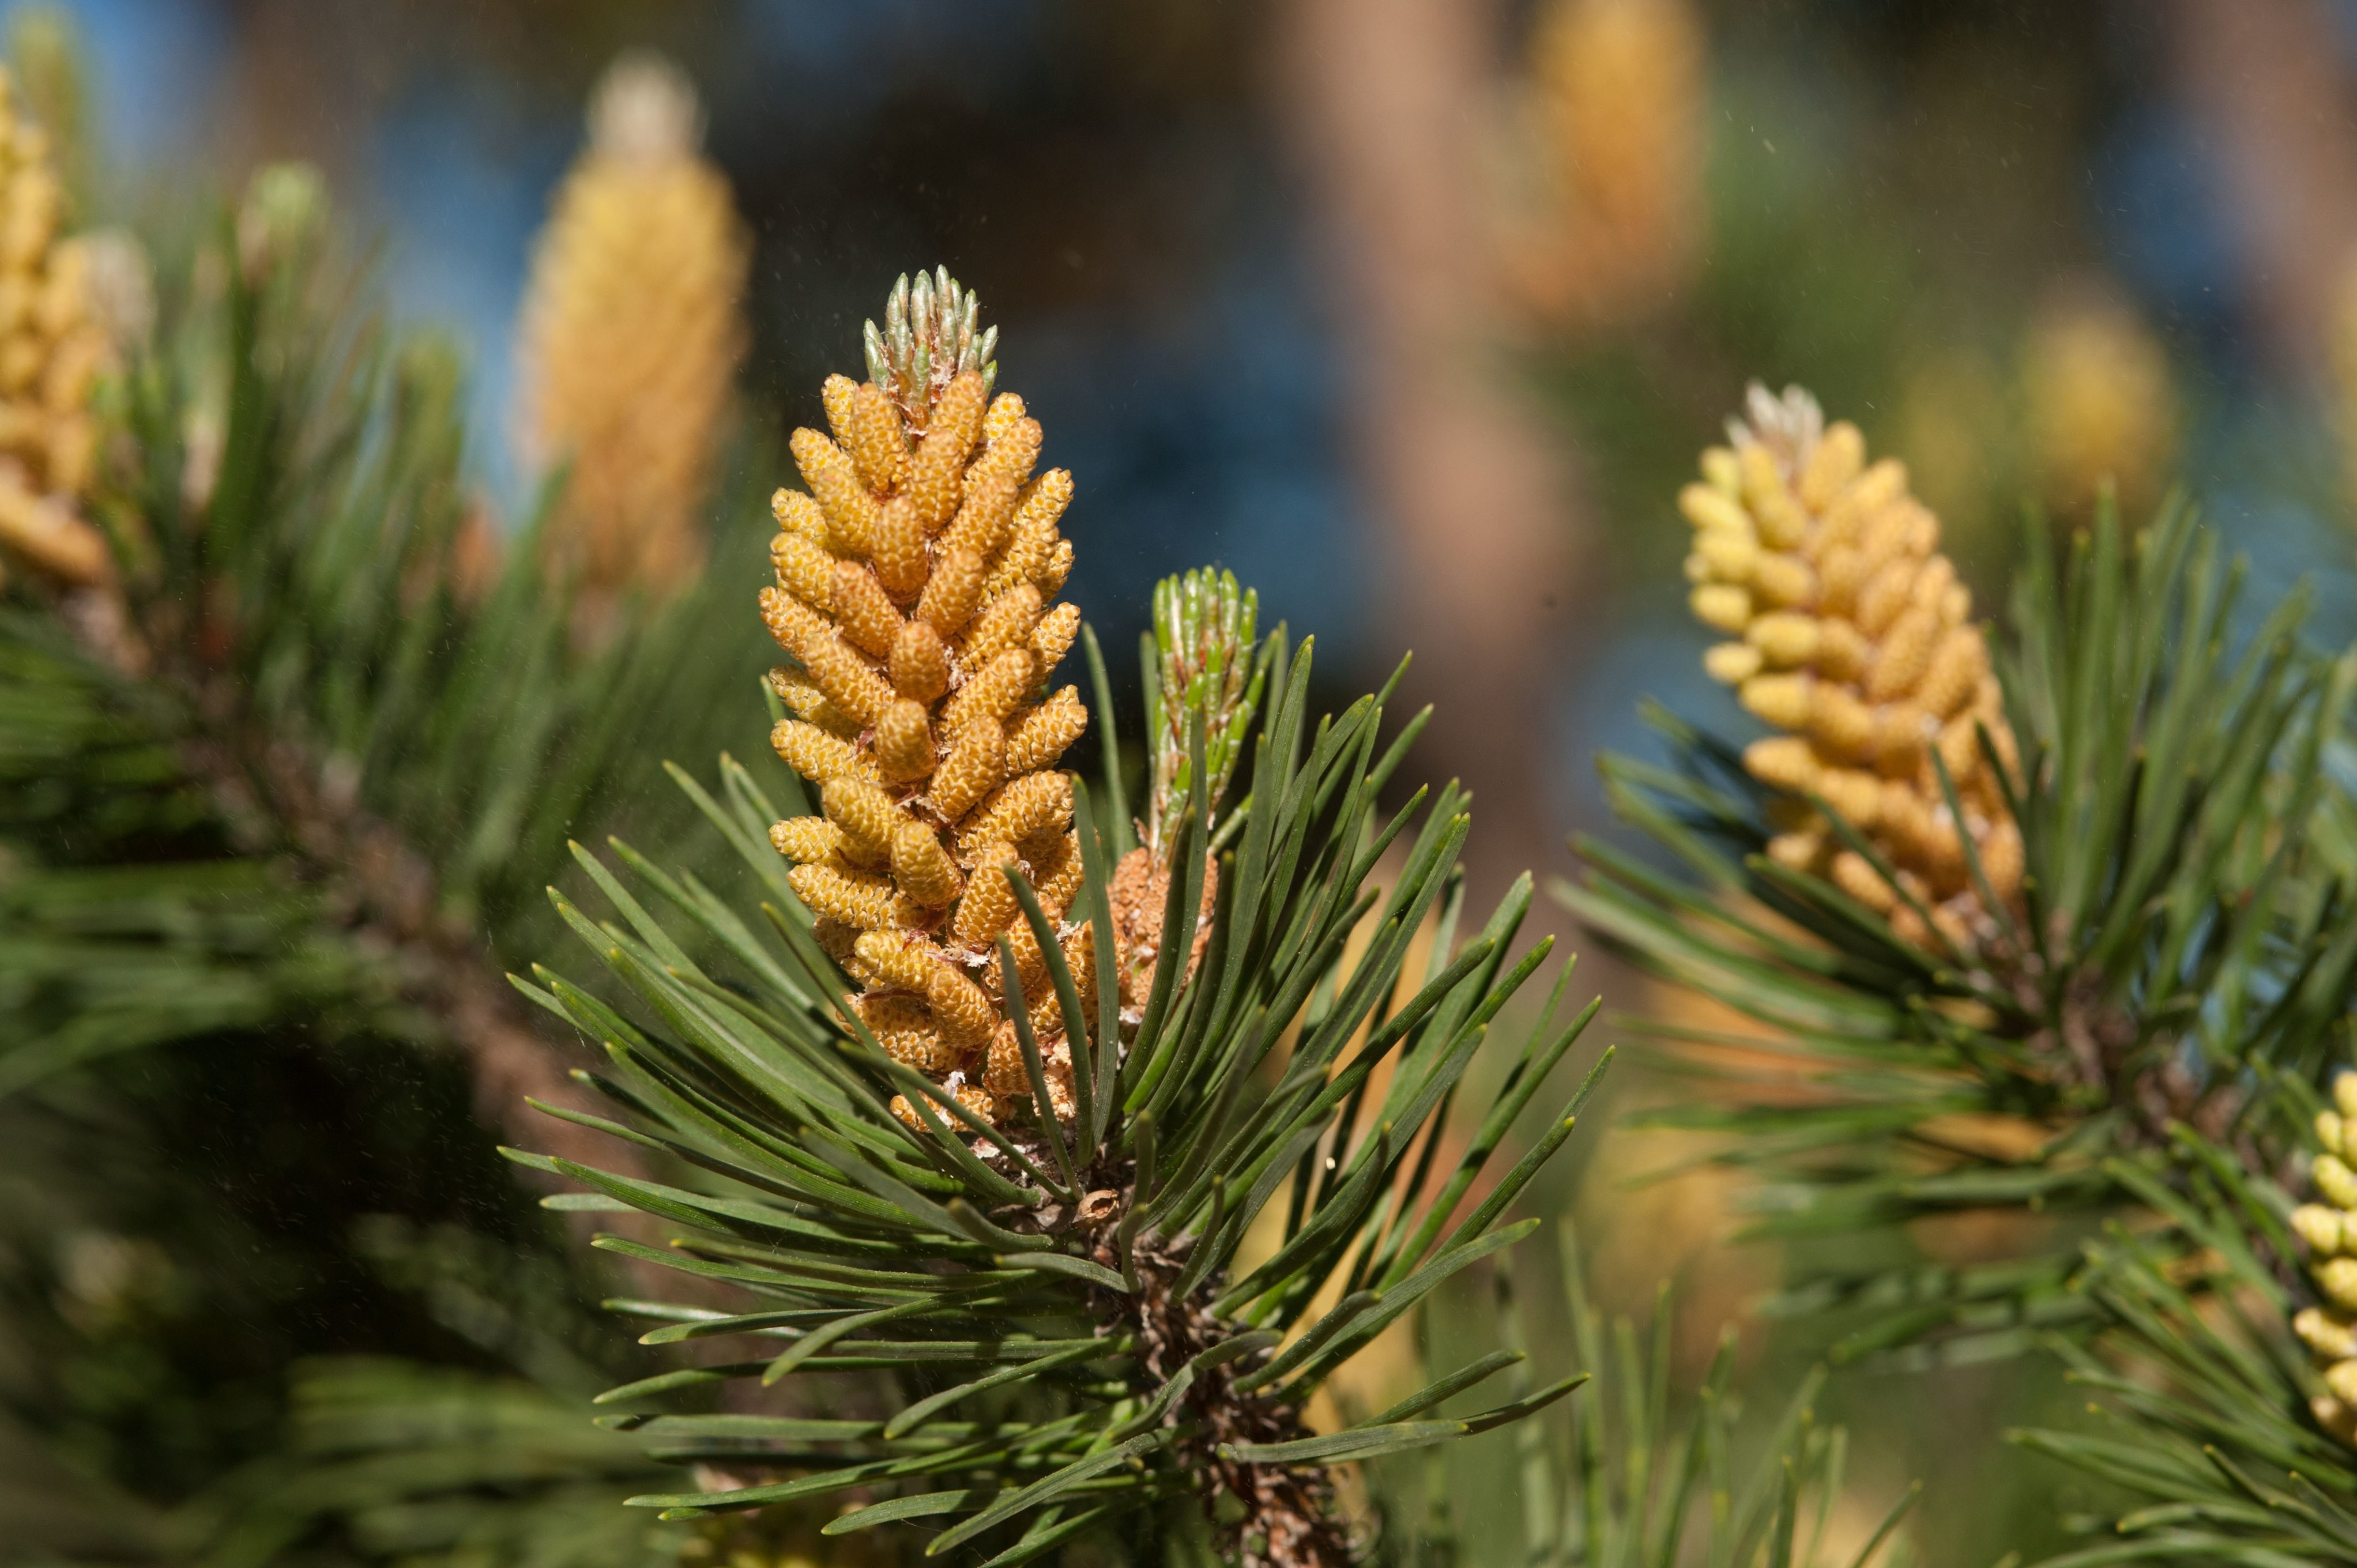 Close up of cones of lodgepole pine (Pinus contorta)